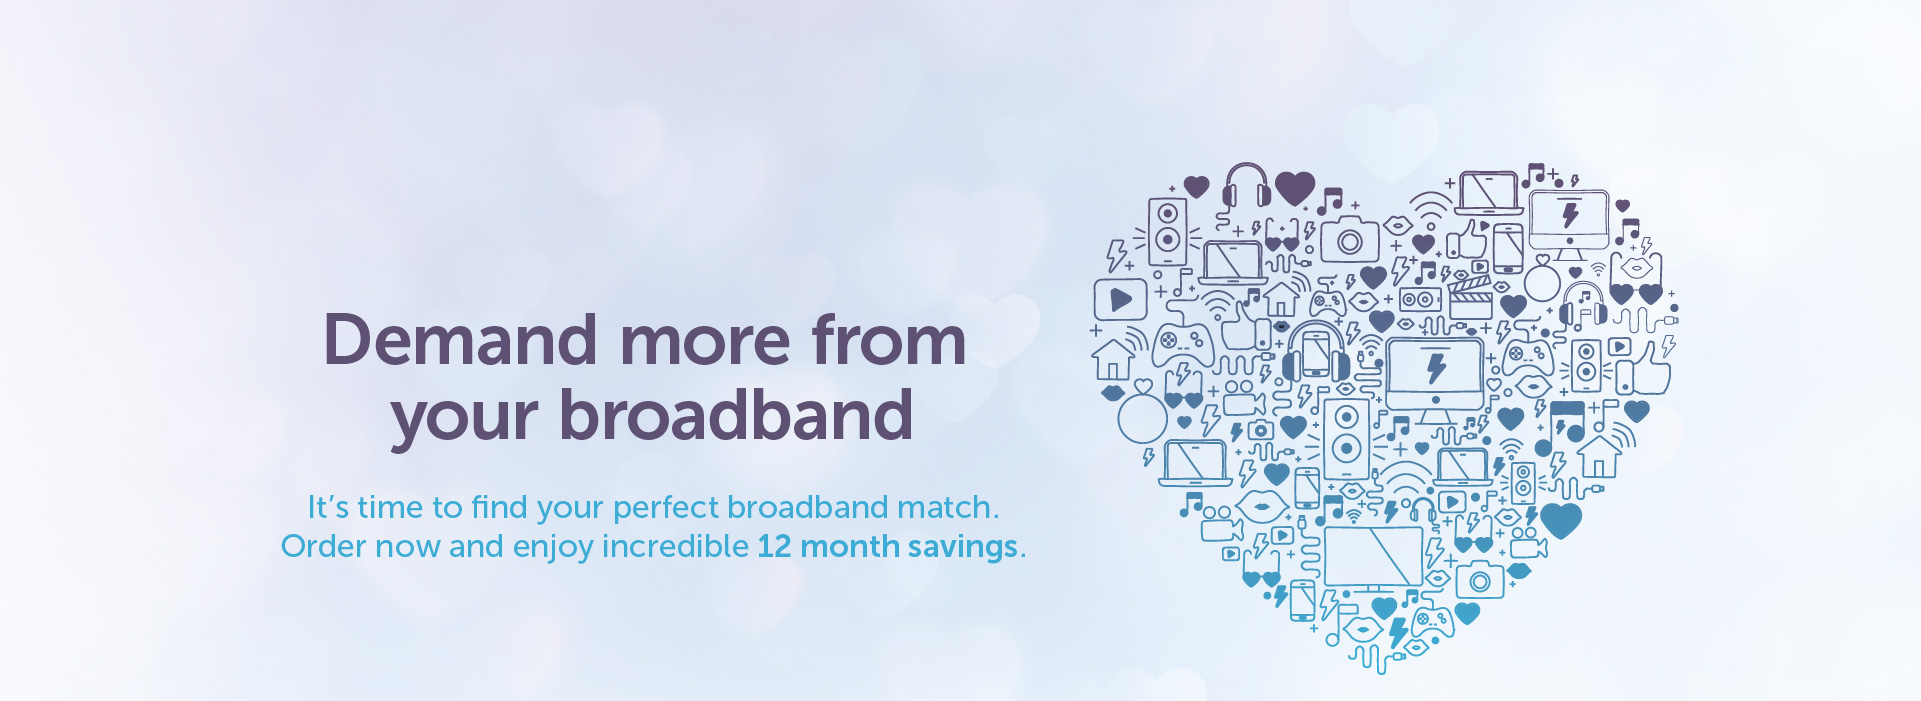 Hyperoptic Feb Offers - Demand more from your broadband